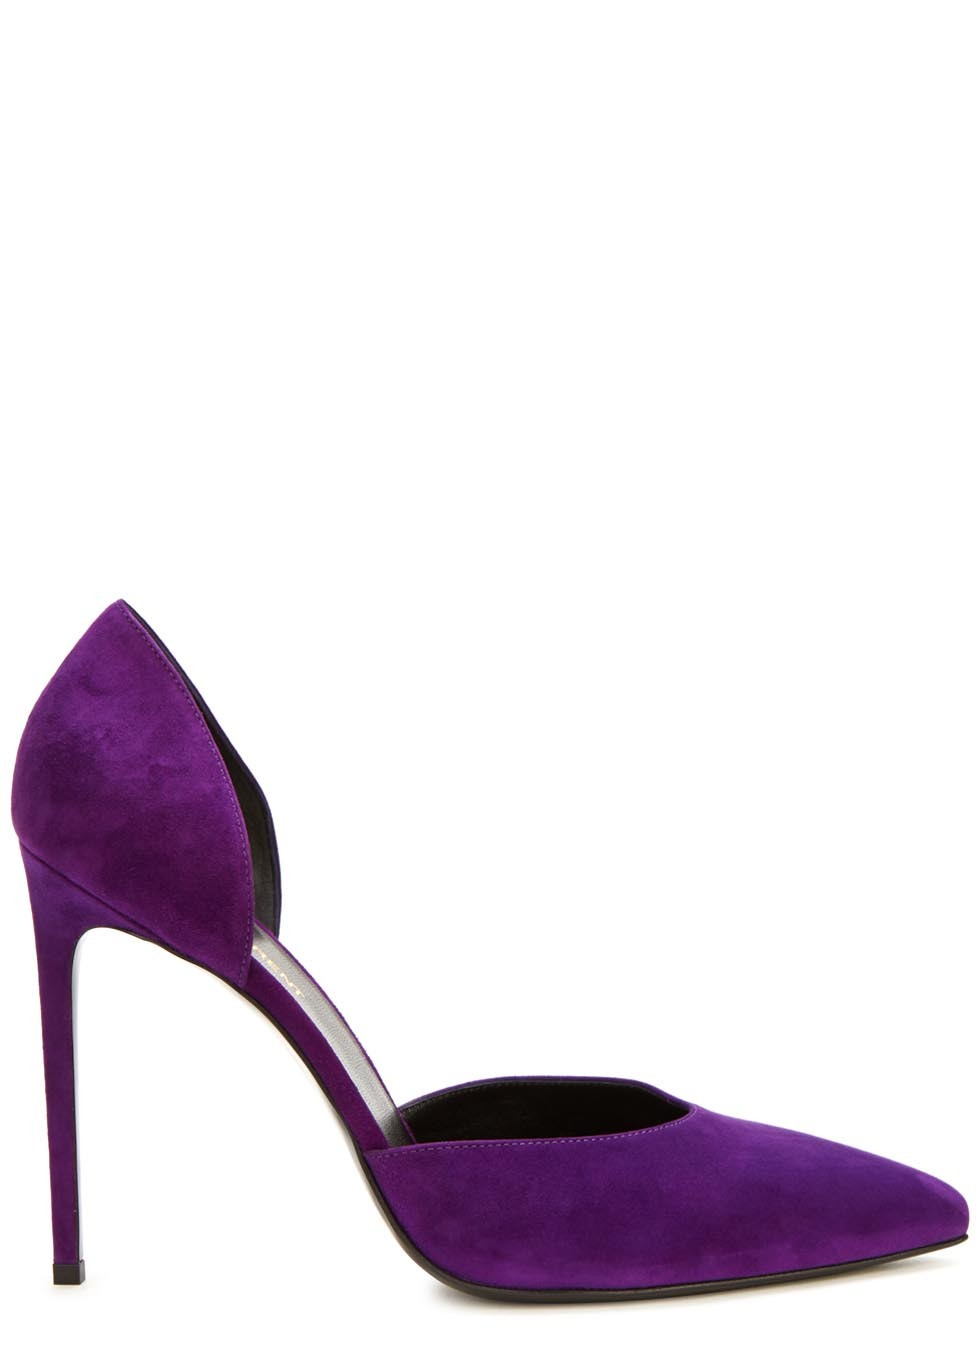 Purple Suede Pumps - predominant colour: purple; occasions: evening, occasion; material: suede; heel height: high; heel: stiletto; toe: pointed toe; style: courts; finish: plain; pattern: plain; season: a/w 2015; wardrobe: event